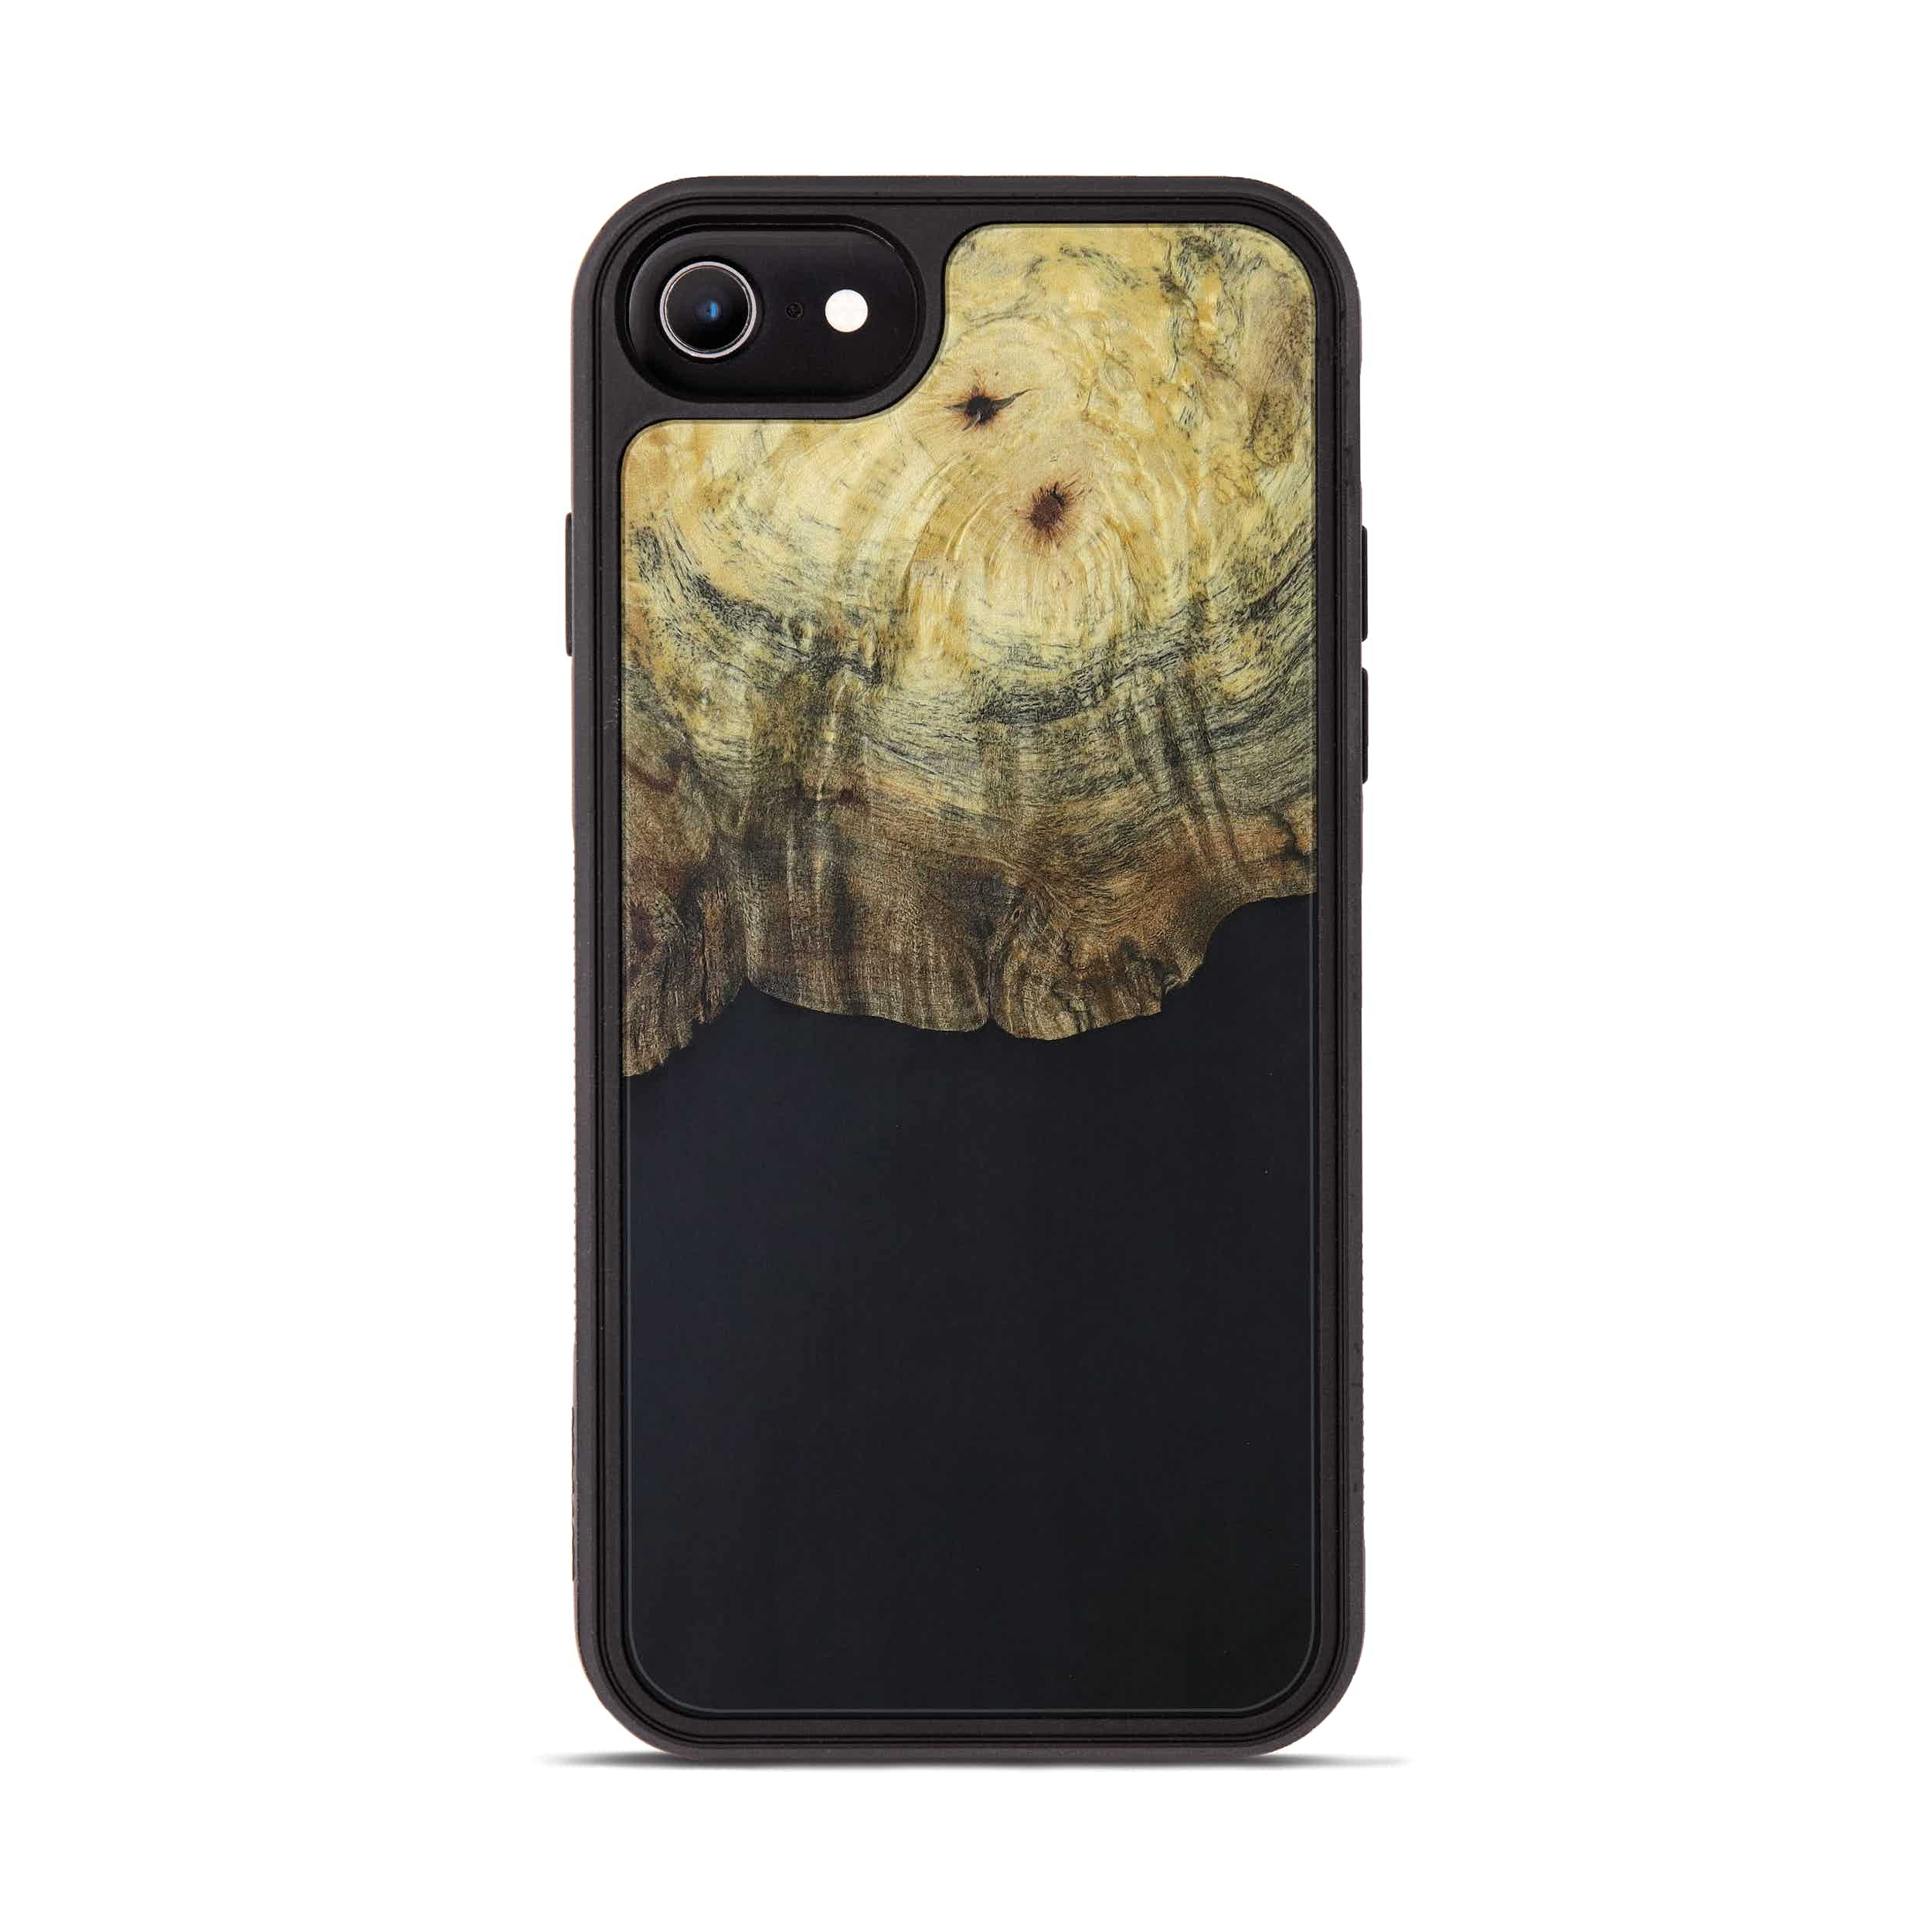 iPhone 8 Wood+Resin Phone Case - Walley (Pure Black, 394282)